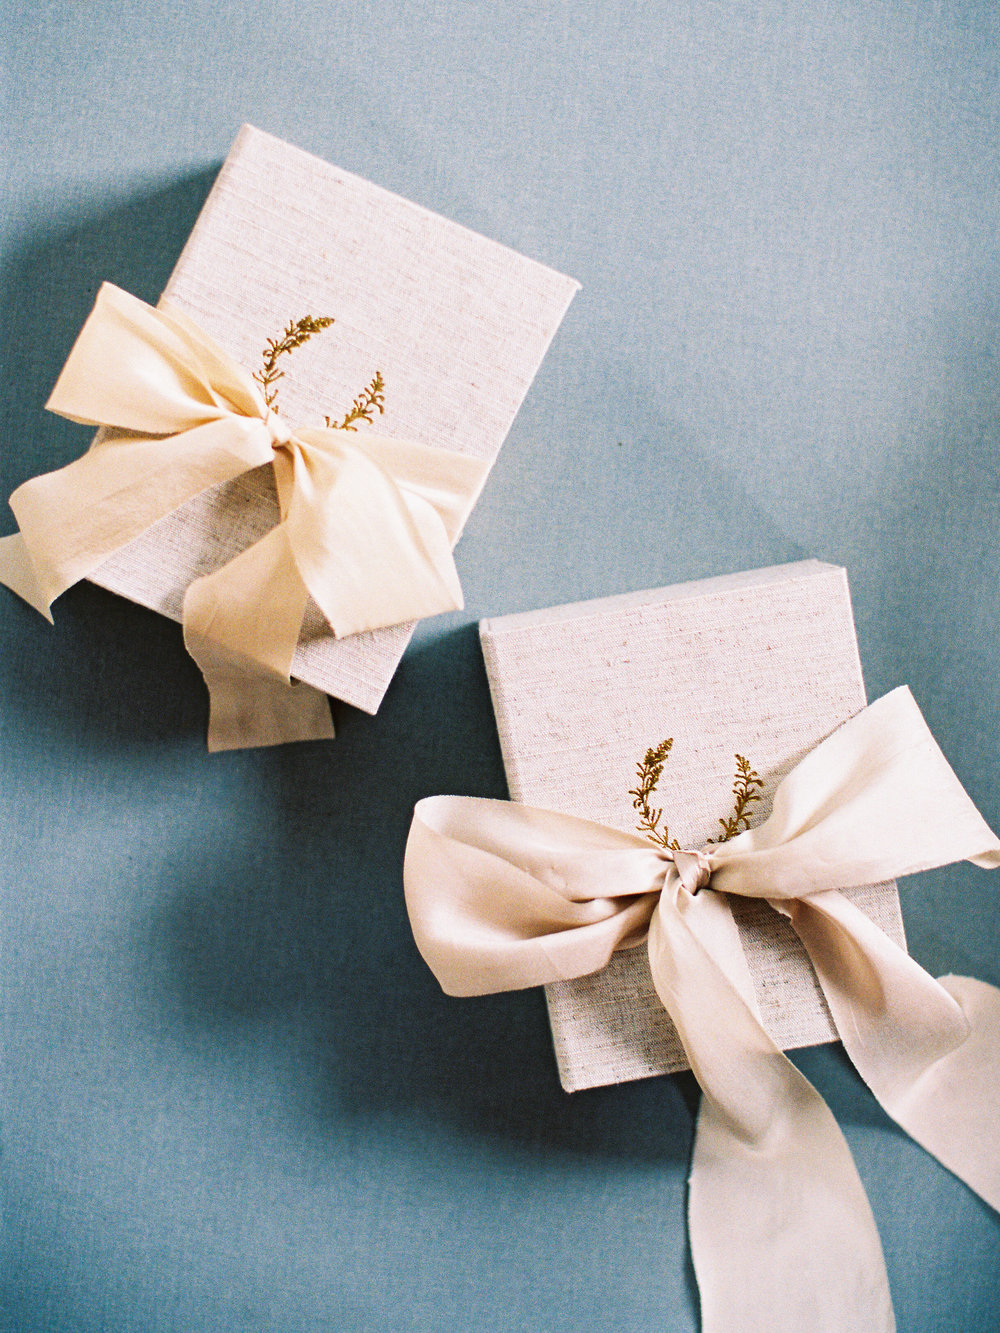 Linen Print Boxes tied with Silk + Willow Ribbons